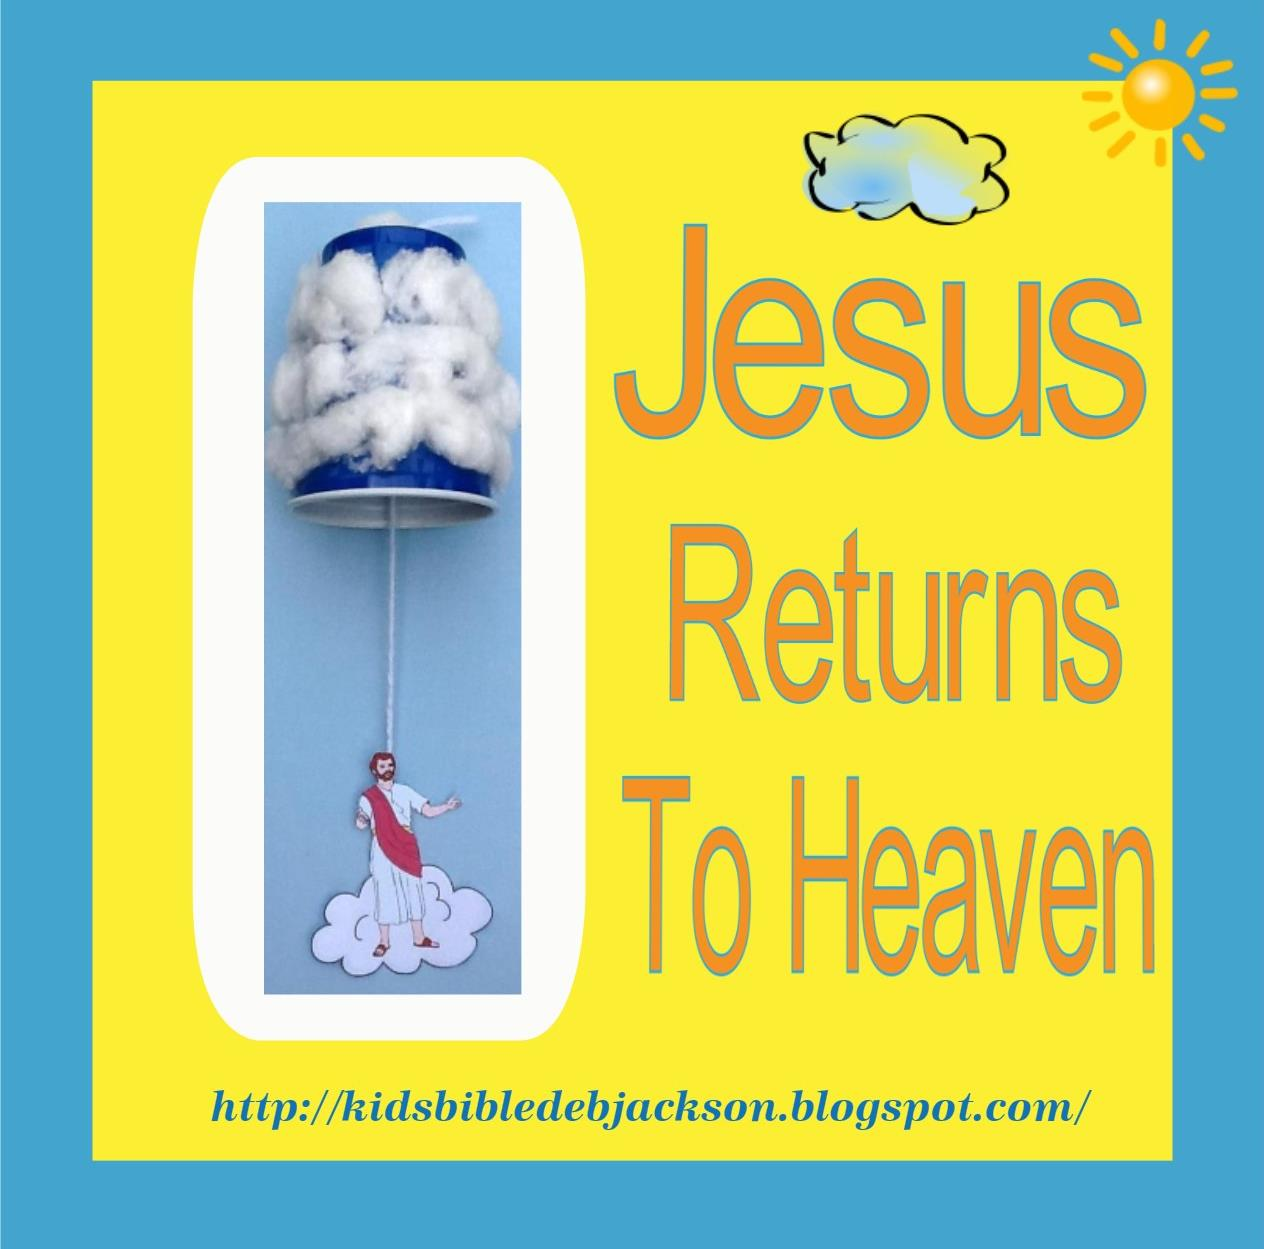 http://kidsbibledebjackson.blogspot.com/2012/09/jesus-has-breakfast-on-shore-with-his.html